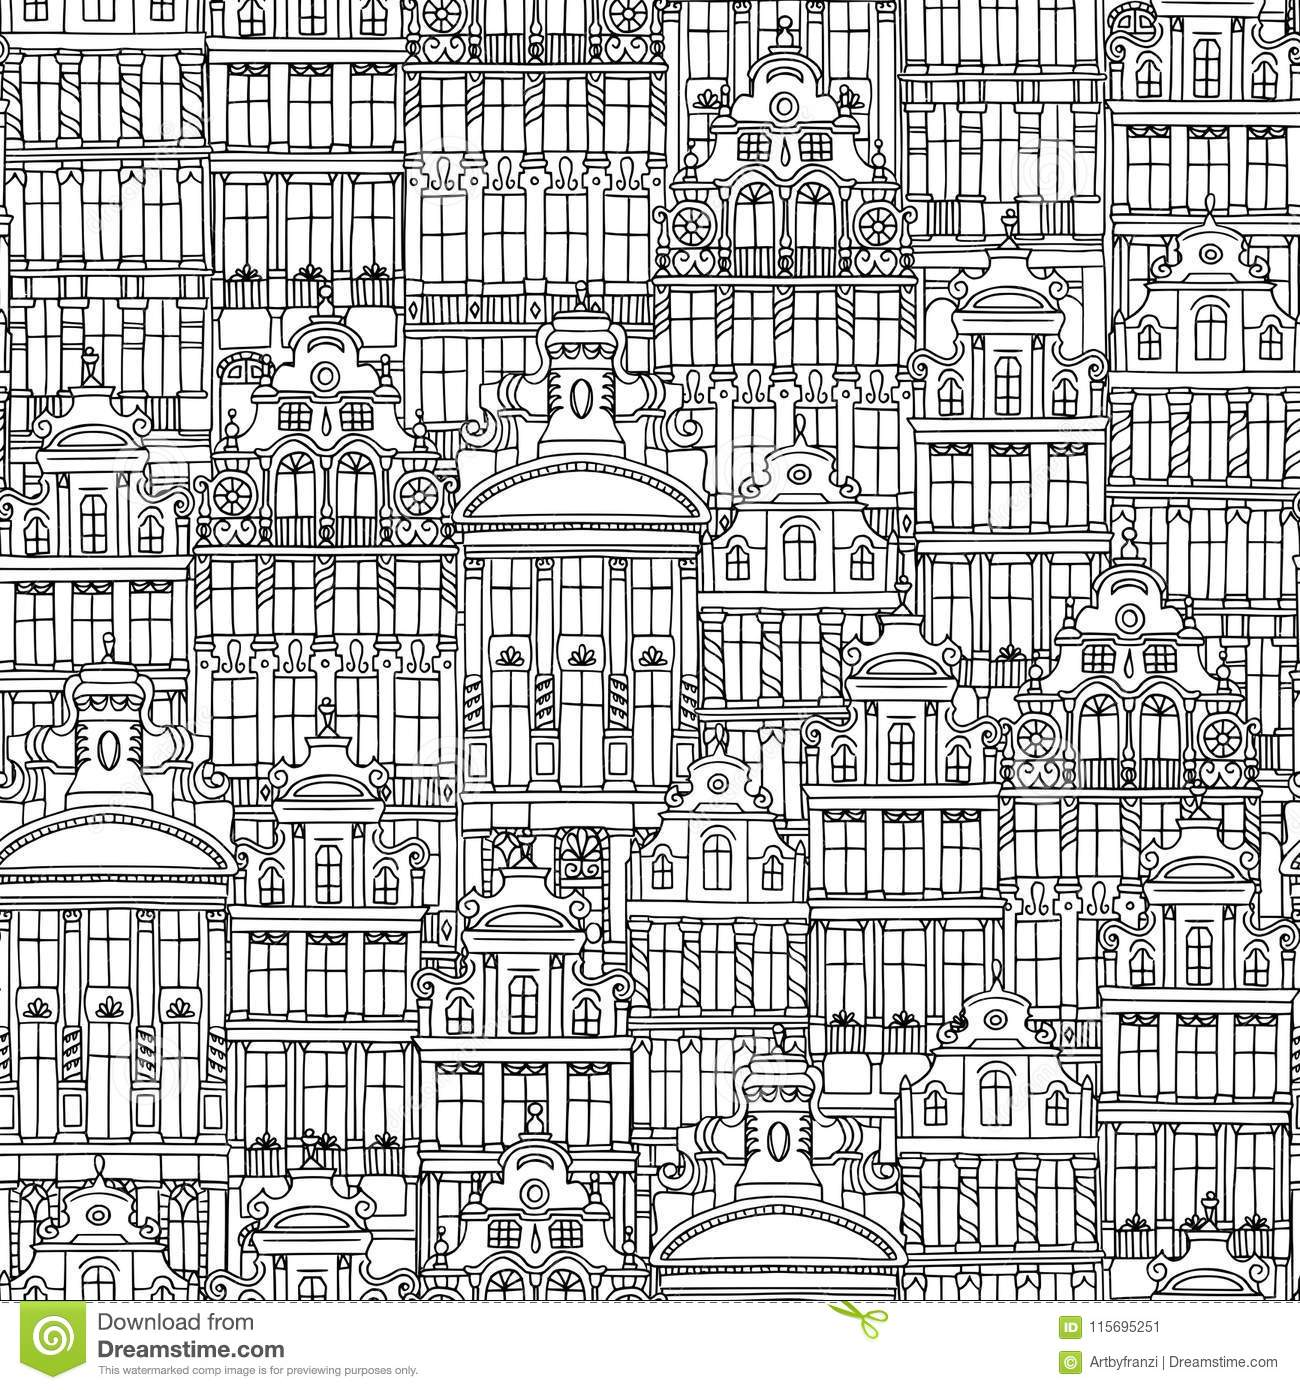 Hand drawn seamless pattern of Belgian houses